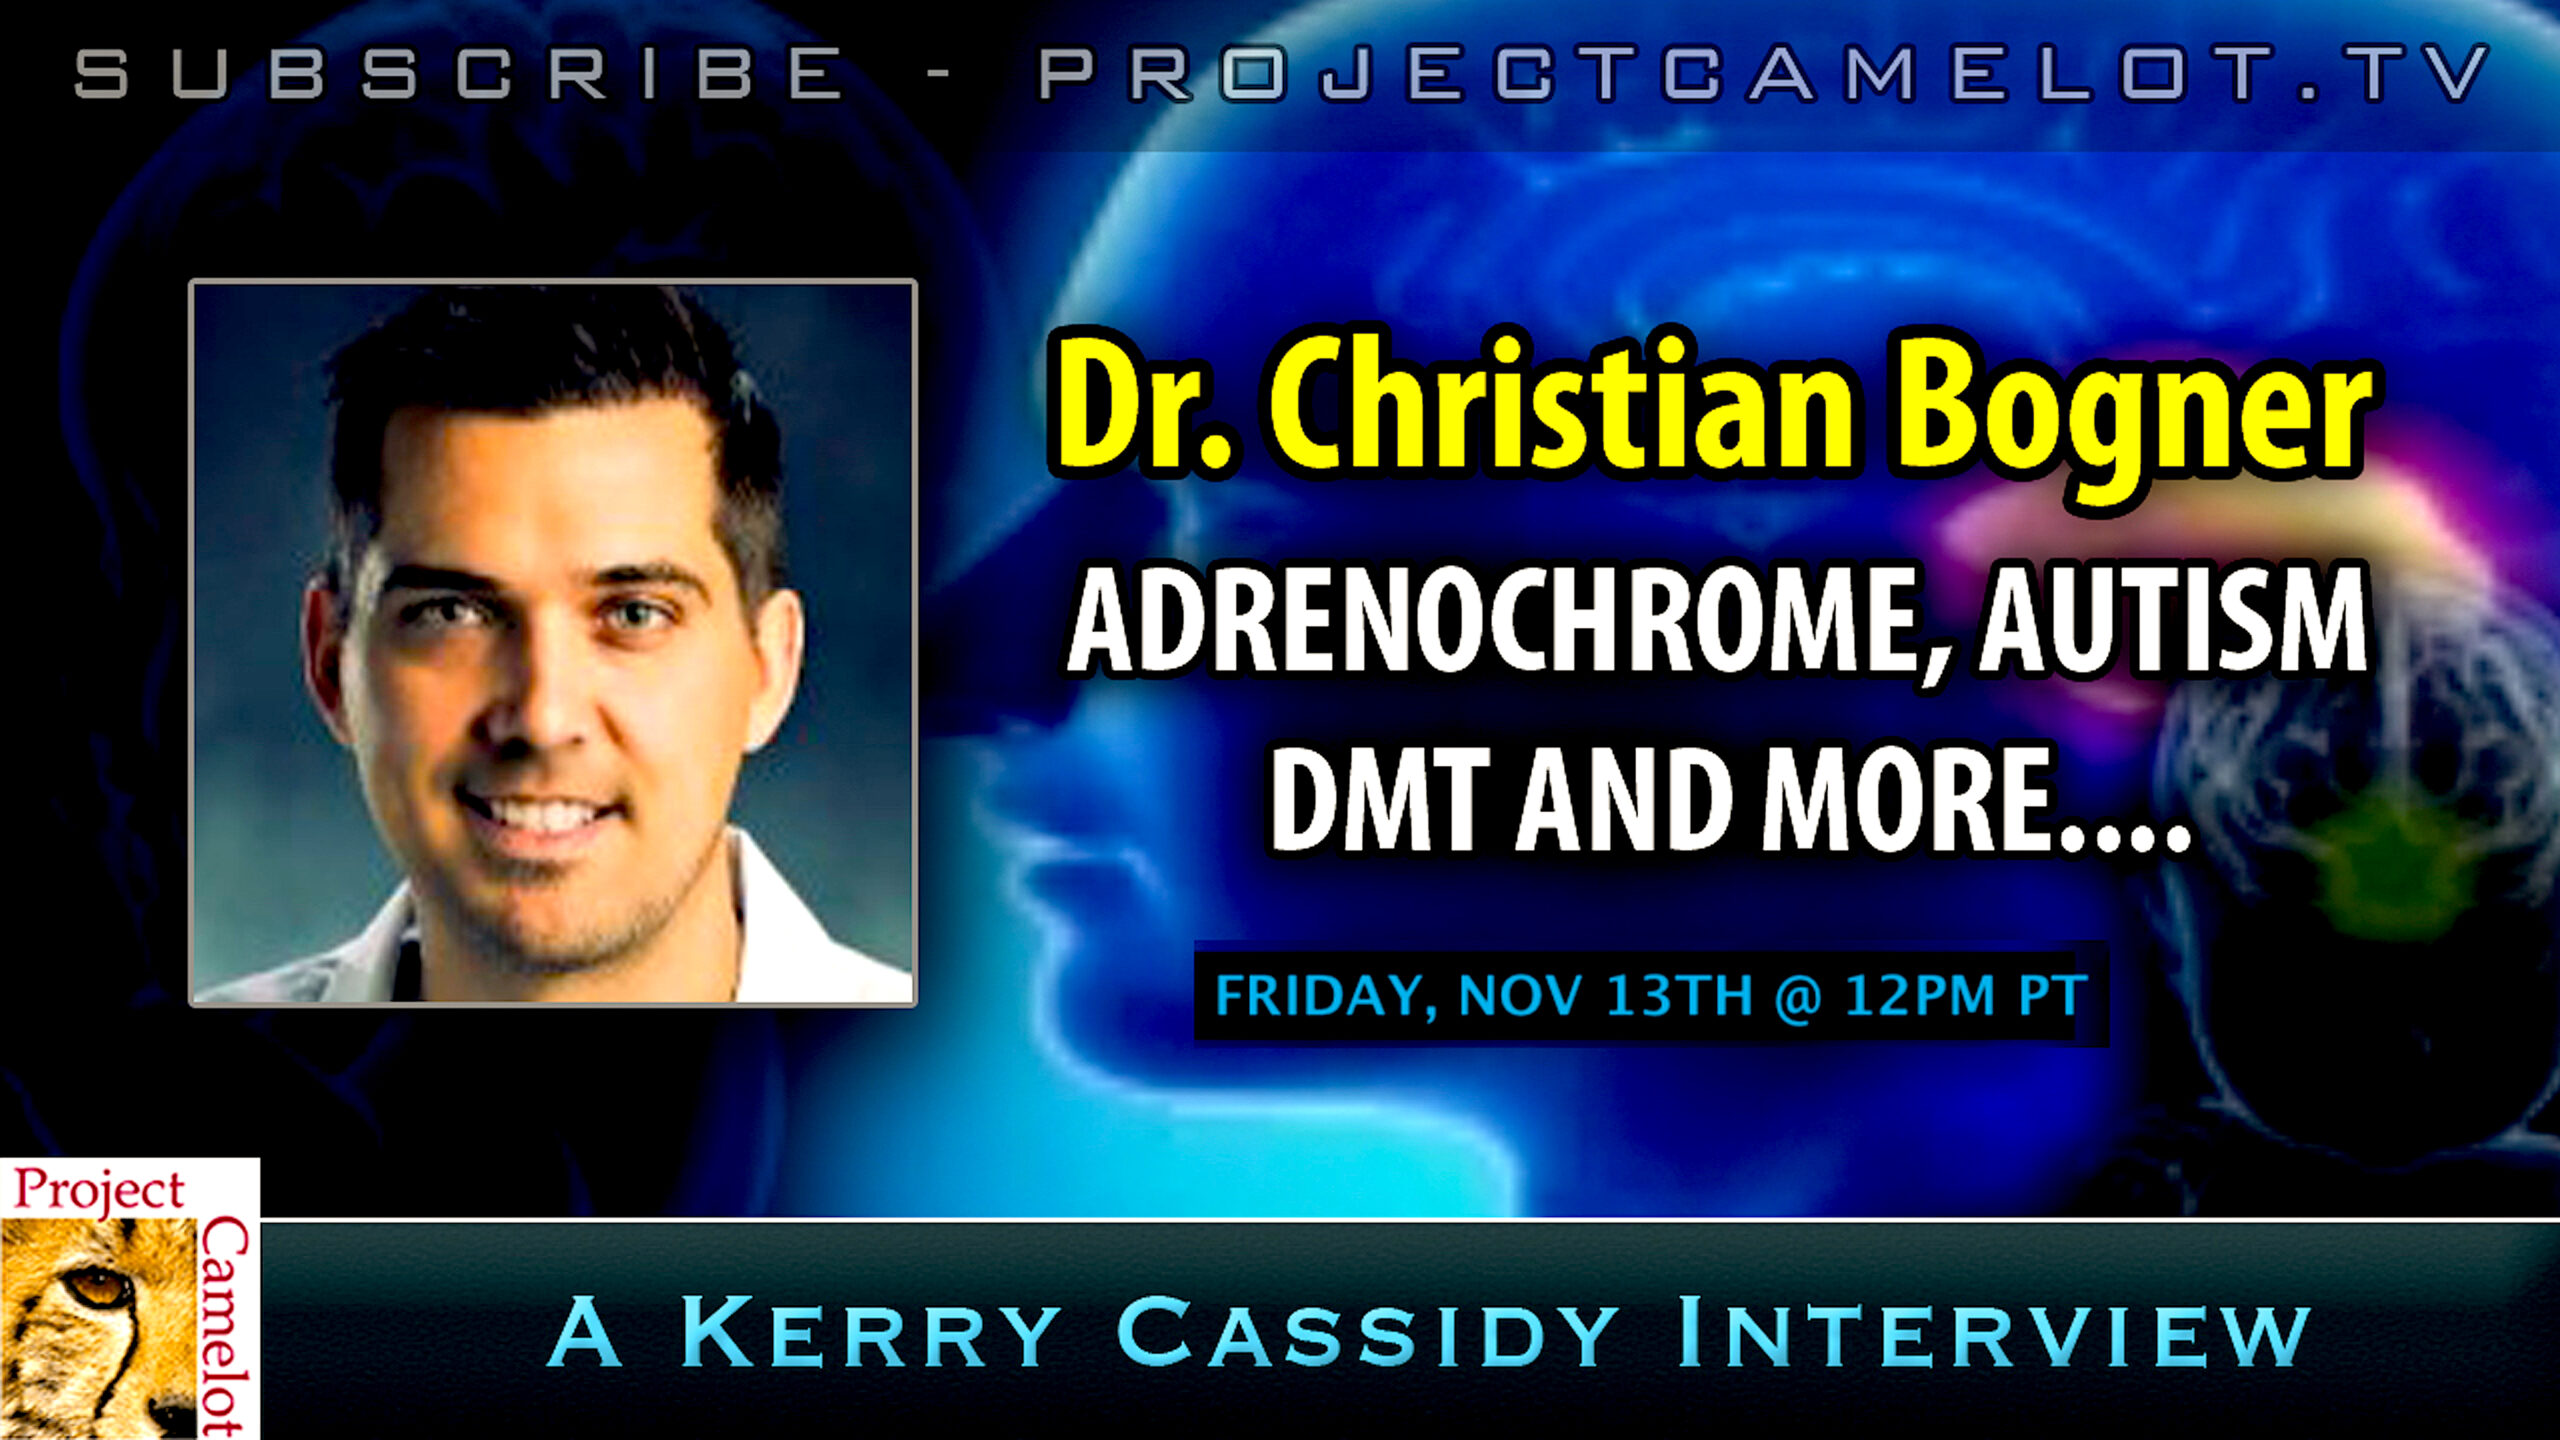 Project Camelot | Kerry Cassidy – Dr Christian Bogner about ADRENOCHROME and DMT